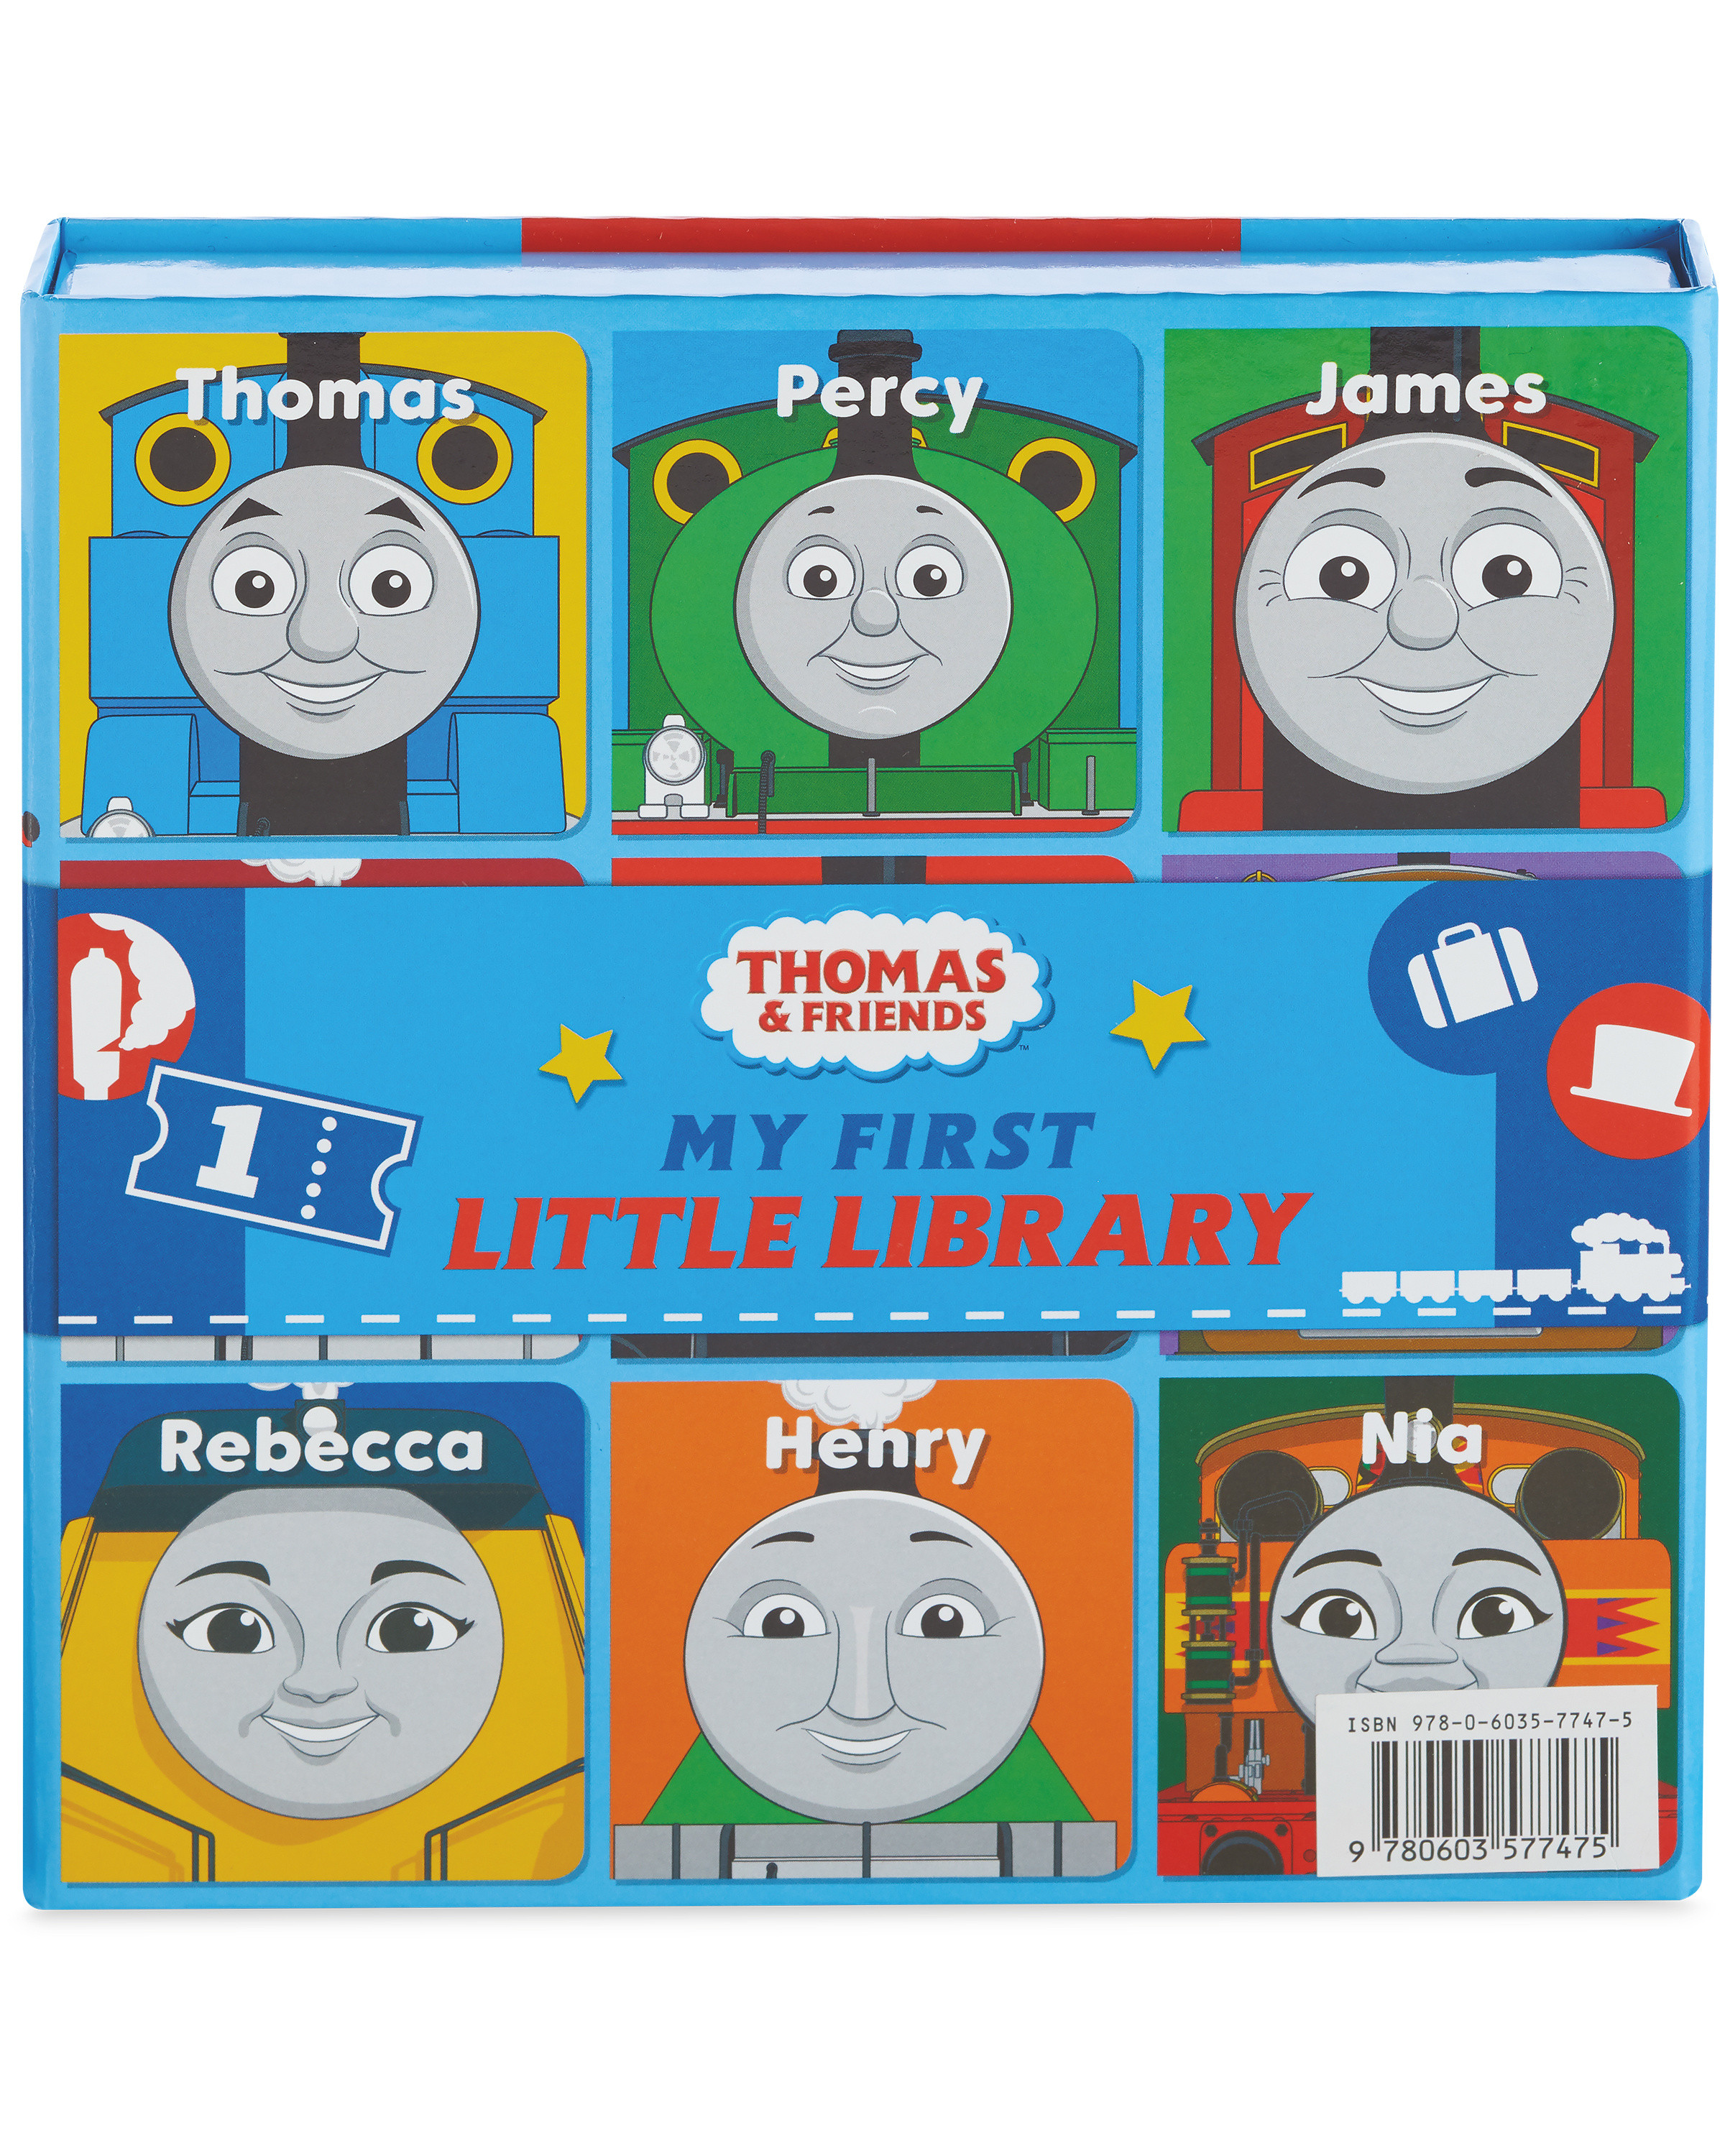 Thomas & Friends Box of Little Books